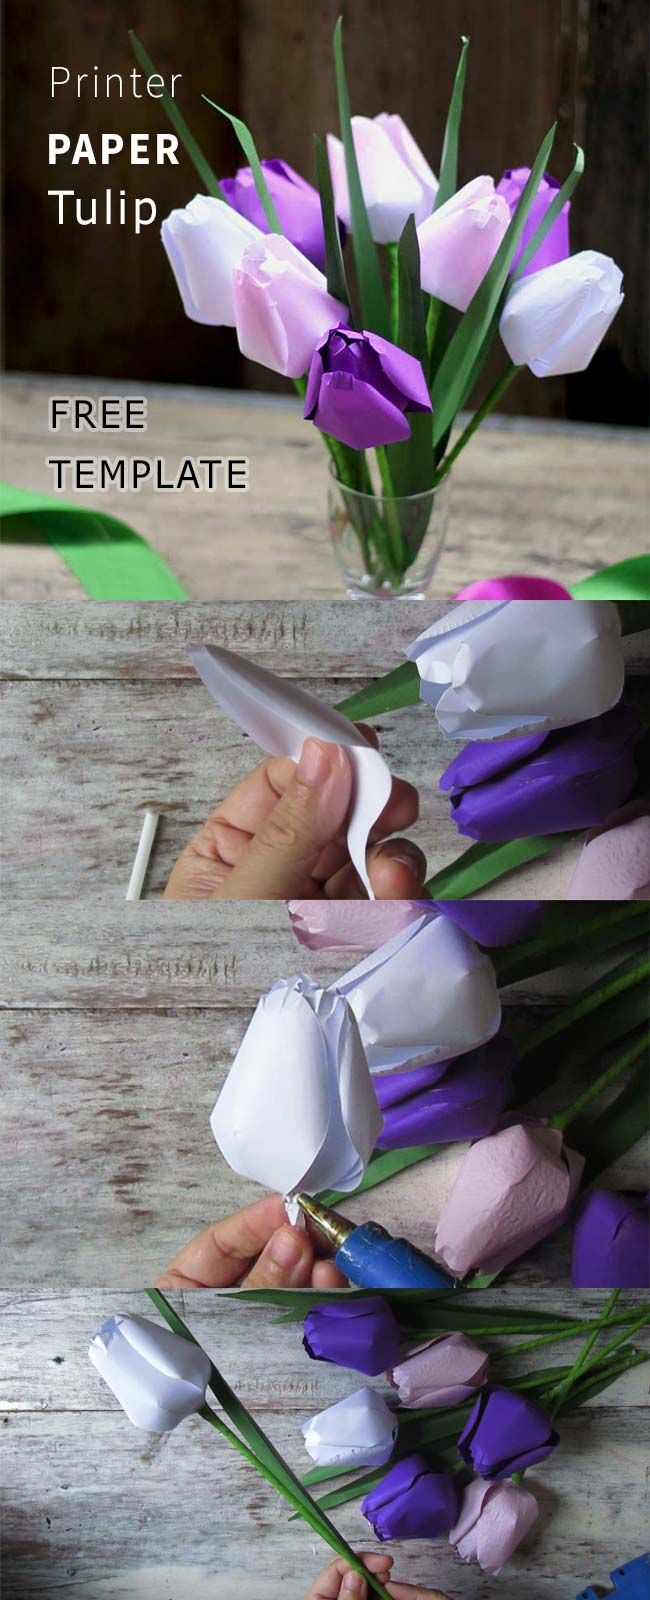 Free Template And Tutorial To Make Paper Tulip From Printer Paper And Straw Paperflowers F Paper Flower Tutorial Origami Flowers Tutorial Origami Flowers Diy